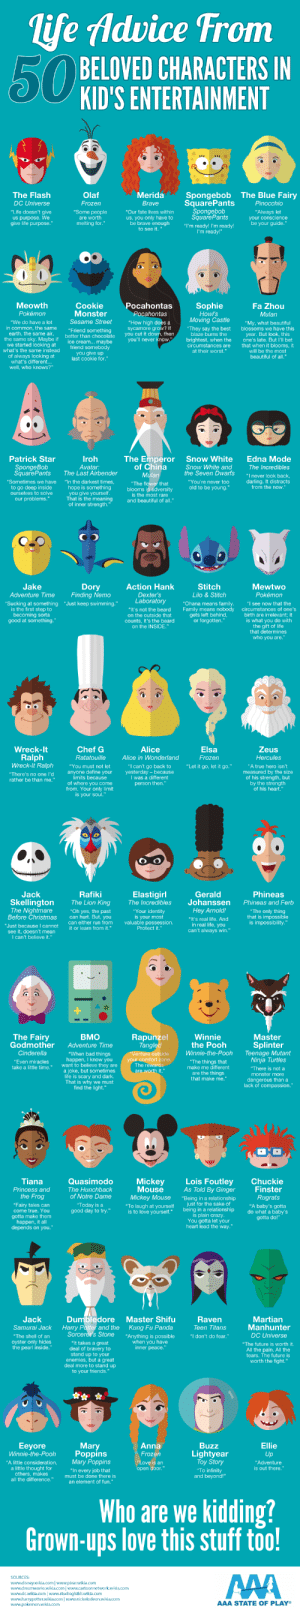 """Thank you AAA for this nice infographic. Have a good day ppl.: life Advice From  50 BELOVED CHARACTERS IN  KID'S ENTERTAINMENT  Spongebob  SquarePants  Spongebob  SquarePants  The Blue Fairy  The Flash  Olaf  Merida  DC Universe  Frozen  Brave  Pinocchio  """"Life doesn't give  us purpose. We  give life purpose.""""  """"Some people  """"Our fate lives within  """"Always let  your conscience  be your guide.""""  us, you only have to  be brave enough  to see it.  are worth  melting for.""""  """"I'm ready! I'm ready!  I'm ready!""""  Meowth  Cookie  Monster  Pocahontas  Sophie  Fa Zhou  Pokemon  Pocahontas  Howl's  Moving Castle  Mulan  Sesame Street  """"We do have a lot  in common,  earth, the same air,  the same sky. Maybe if  we started looking at  what's the same instead  """"How high does a  sycamore grow? If  you cut it down, then  you'll never know.""""  """"My, what beautiful  blossoms we have this  year. But look, this  one's late. But I'll bet  that when it blooms, it  will be the most  beautiful of all.""""  """"They say the best  blaze burns the  brightest, when the  circumstances are  at their worst.""""  same  """"Friend something  better than chocolate  ice cream... maybe  friend somebody  you give up  last cookie for.""""  of always looking at  what's different.  well, who knows?""""  The Emperor  of China  Edna Mode  Patrick Star  Iroh  Snow White  Snow White and  the Seven Dwarfs  SpongeBob  SquarePants  Avatar:  The Last Airbender  The Incredibles  Mulan  """"I never look back,  darling. It distracts  from the now.""""  """"Sometimes we have  """"In the darkest times,  """"You're never too  """"The flower that  blooms in advers ity  is the most rare  and beautiful of all.""""  to go deep inside  ourselves to solve  old to be young.""""  hope is something  you give yourself.  That is the meaning  of inner strength.""""  our problems.""""  Jake  Dory  Finding Nemo  Action Hank  Stitch  Mewtwo  Adventure Time  Dexter's  Laboratory  Lilo & Stitch  Pokémon  """"Ohana means family.  """"Sucking at something  is the first step to  becoming sorta"""